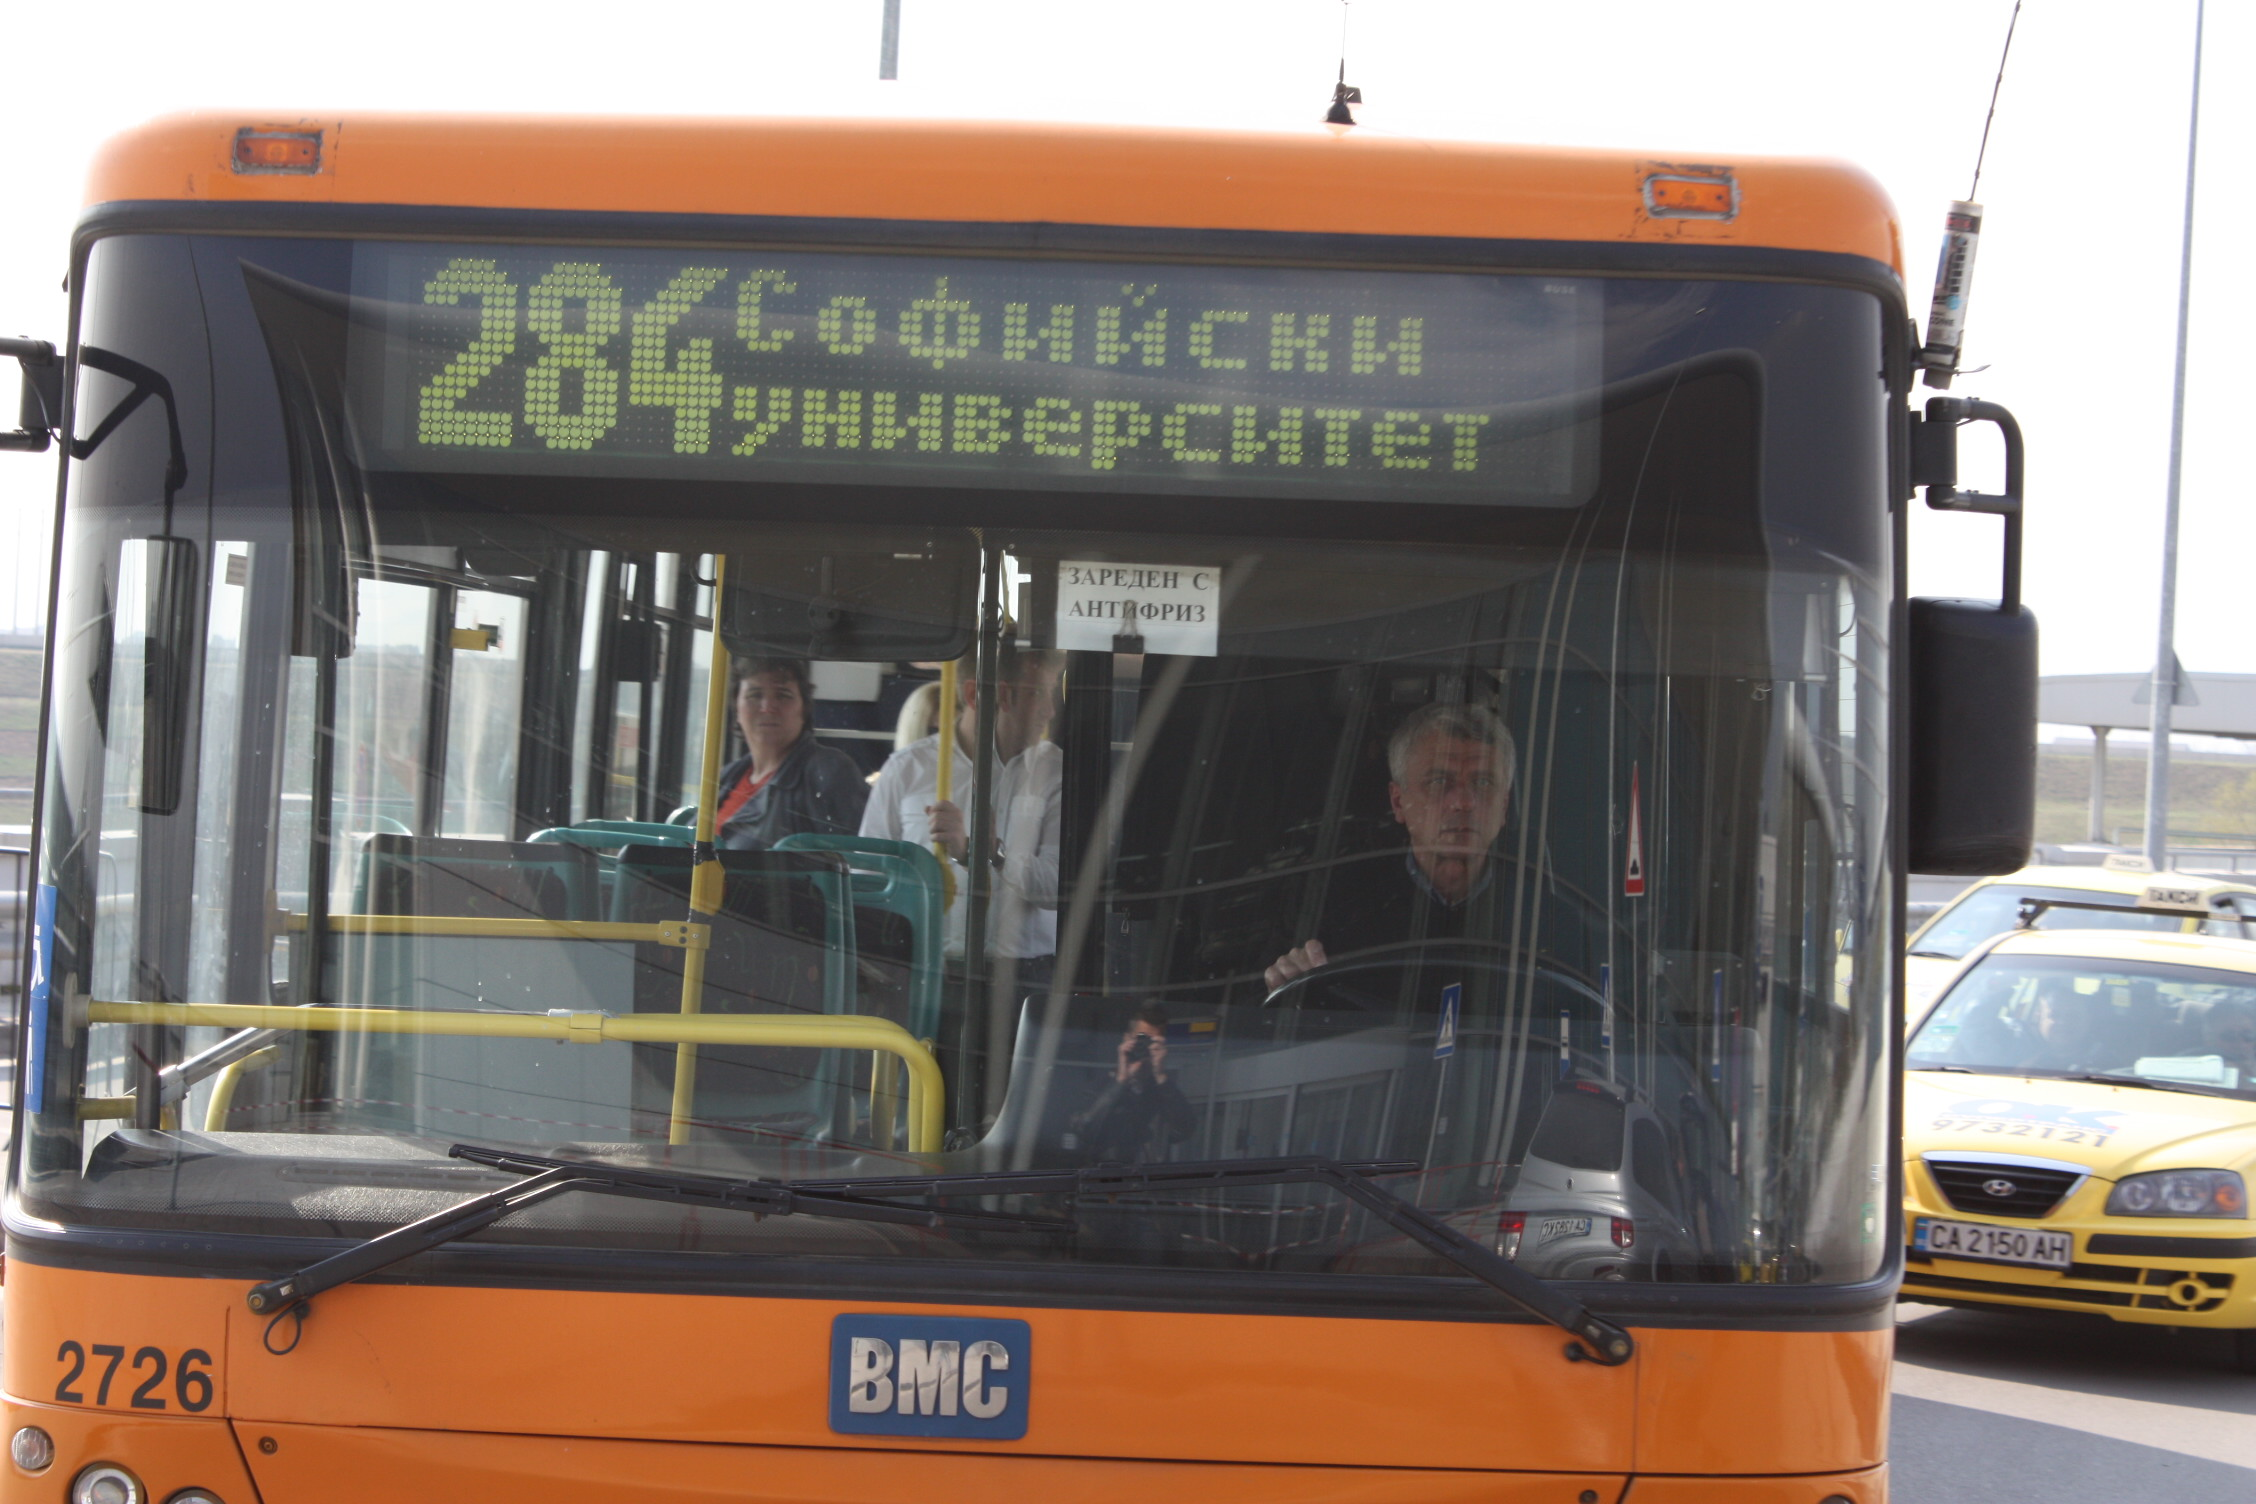 File:Bus Number 284 at Sofia Airport 20090409 002.JPG